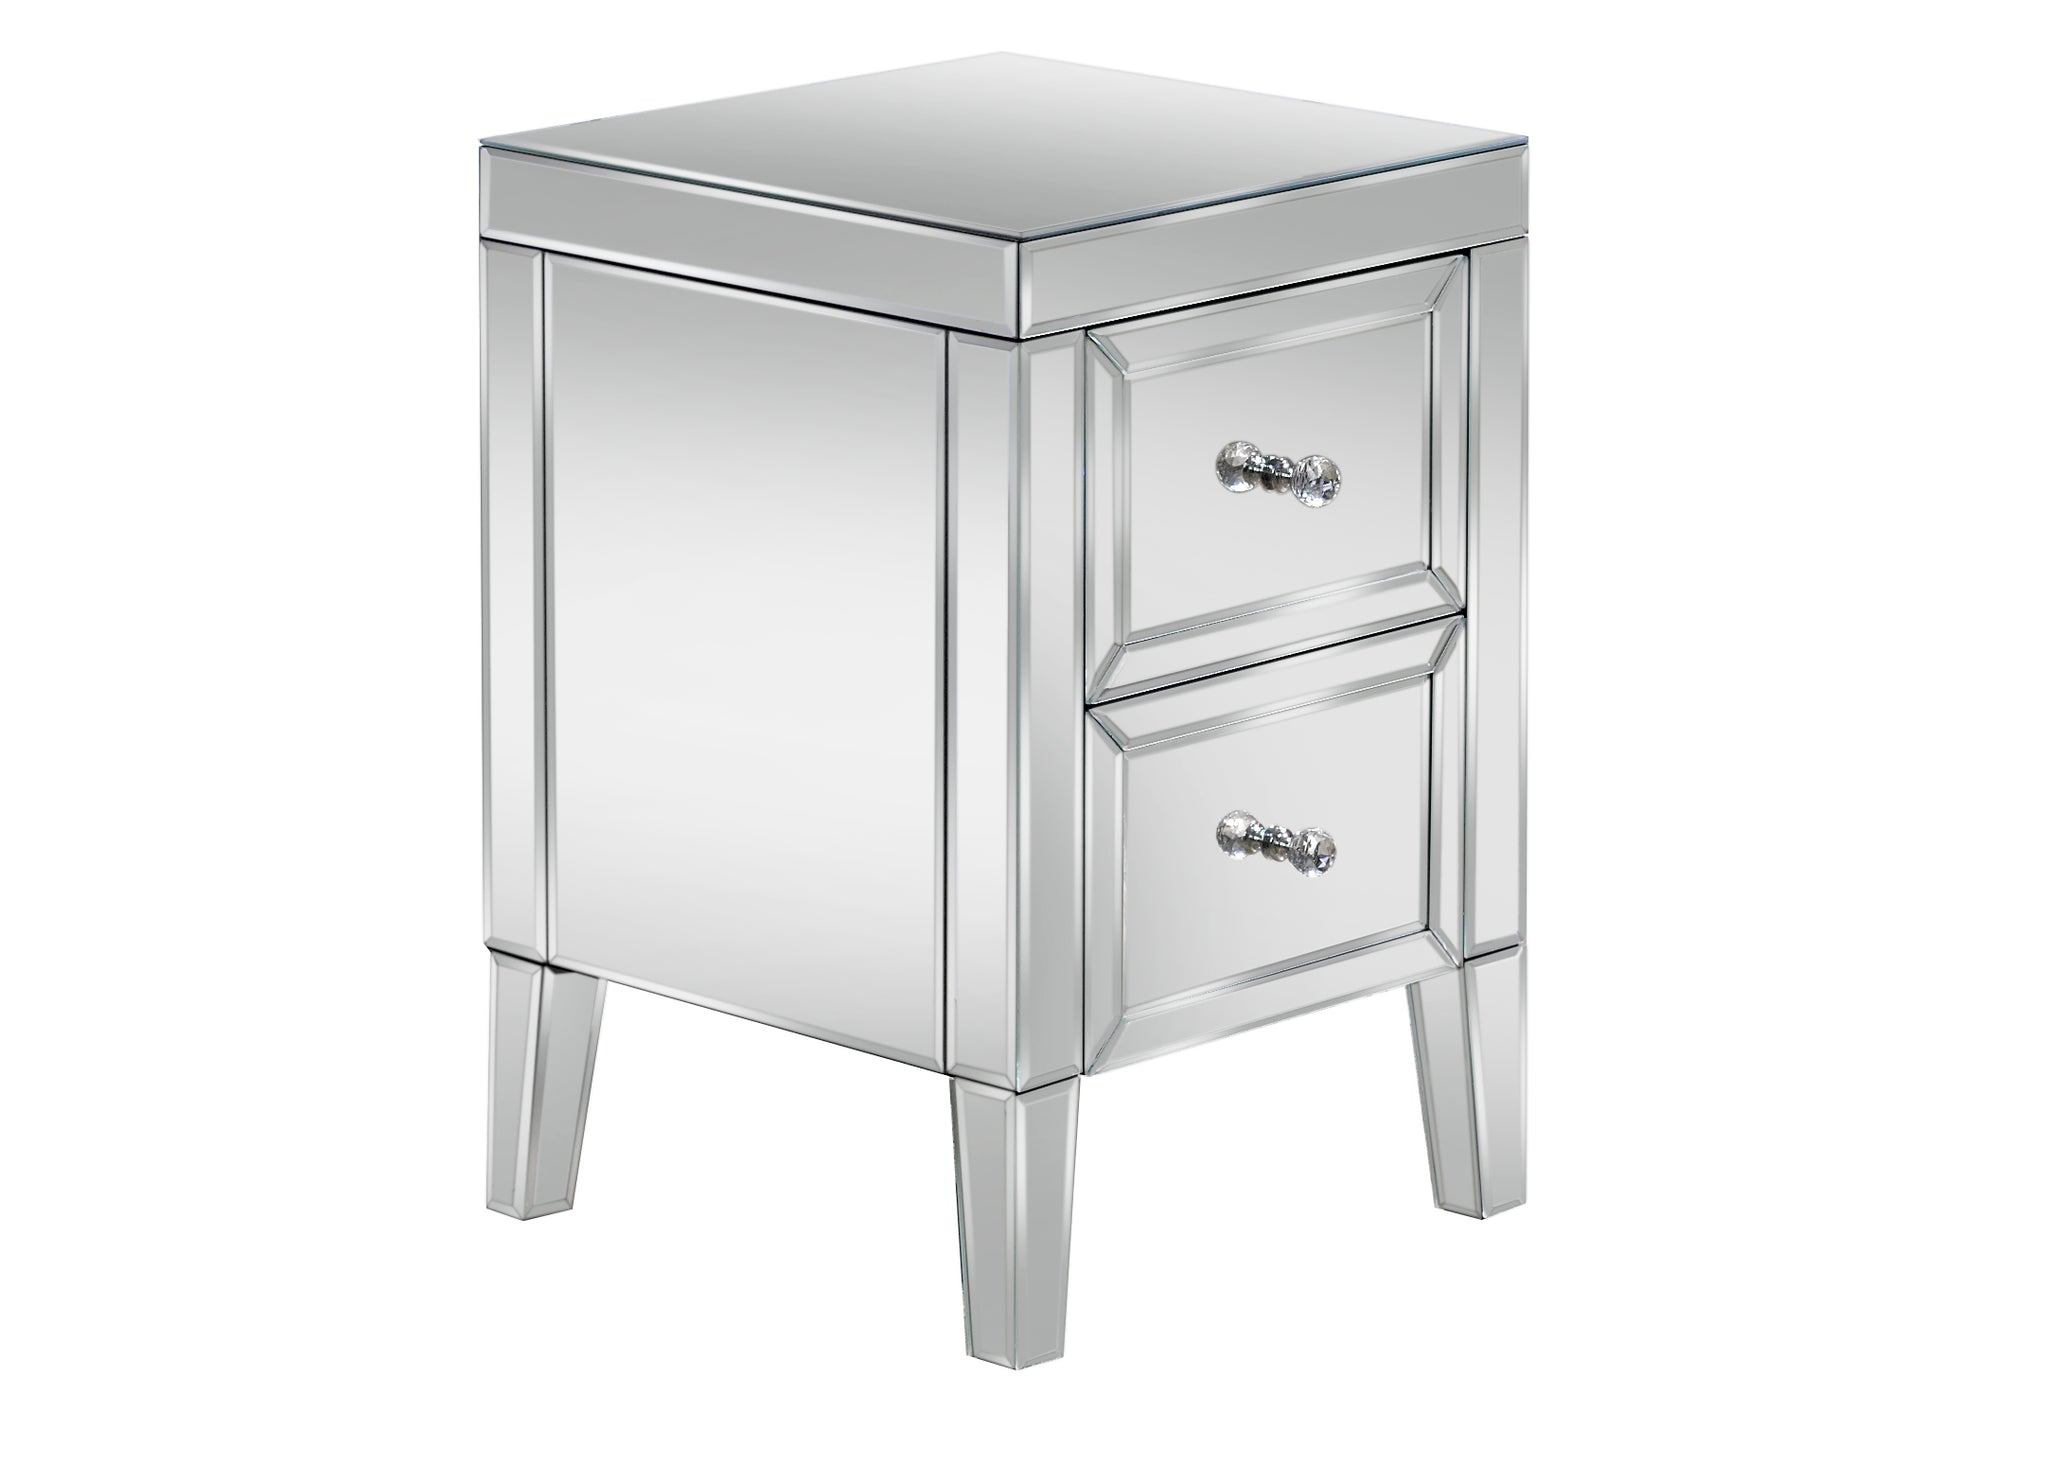 Turia 2 Drawer Bedside Table - Ezzo